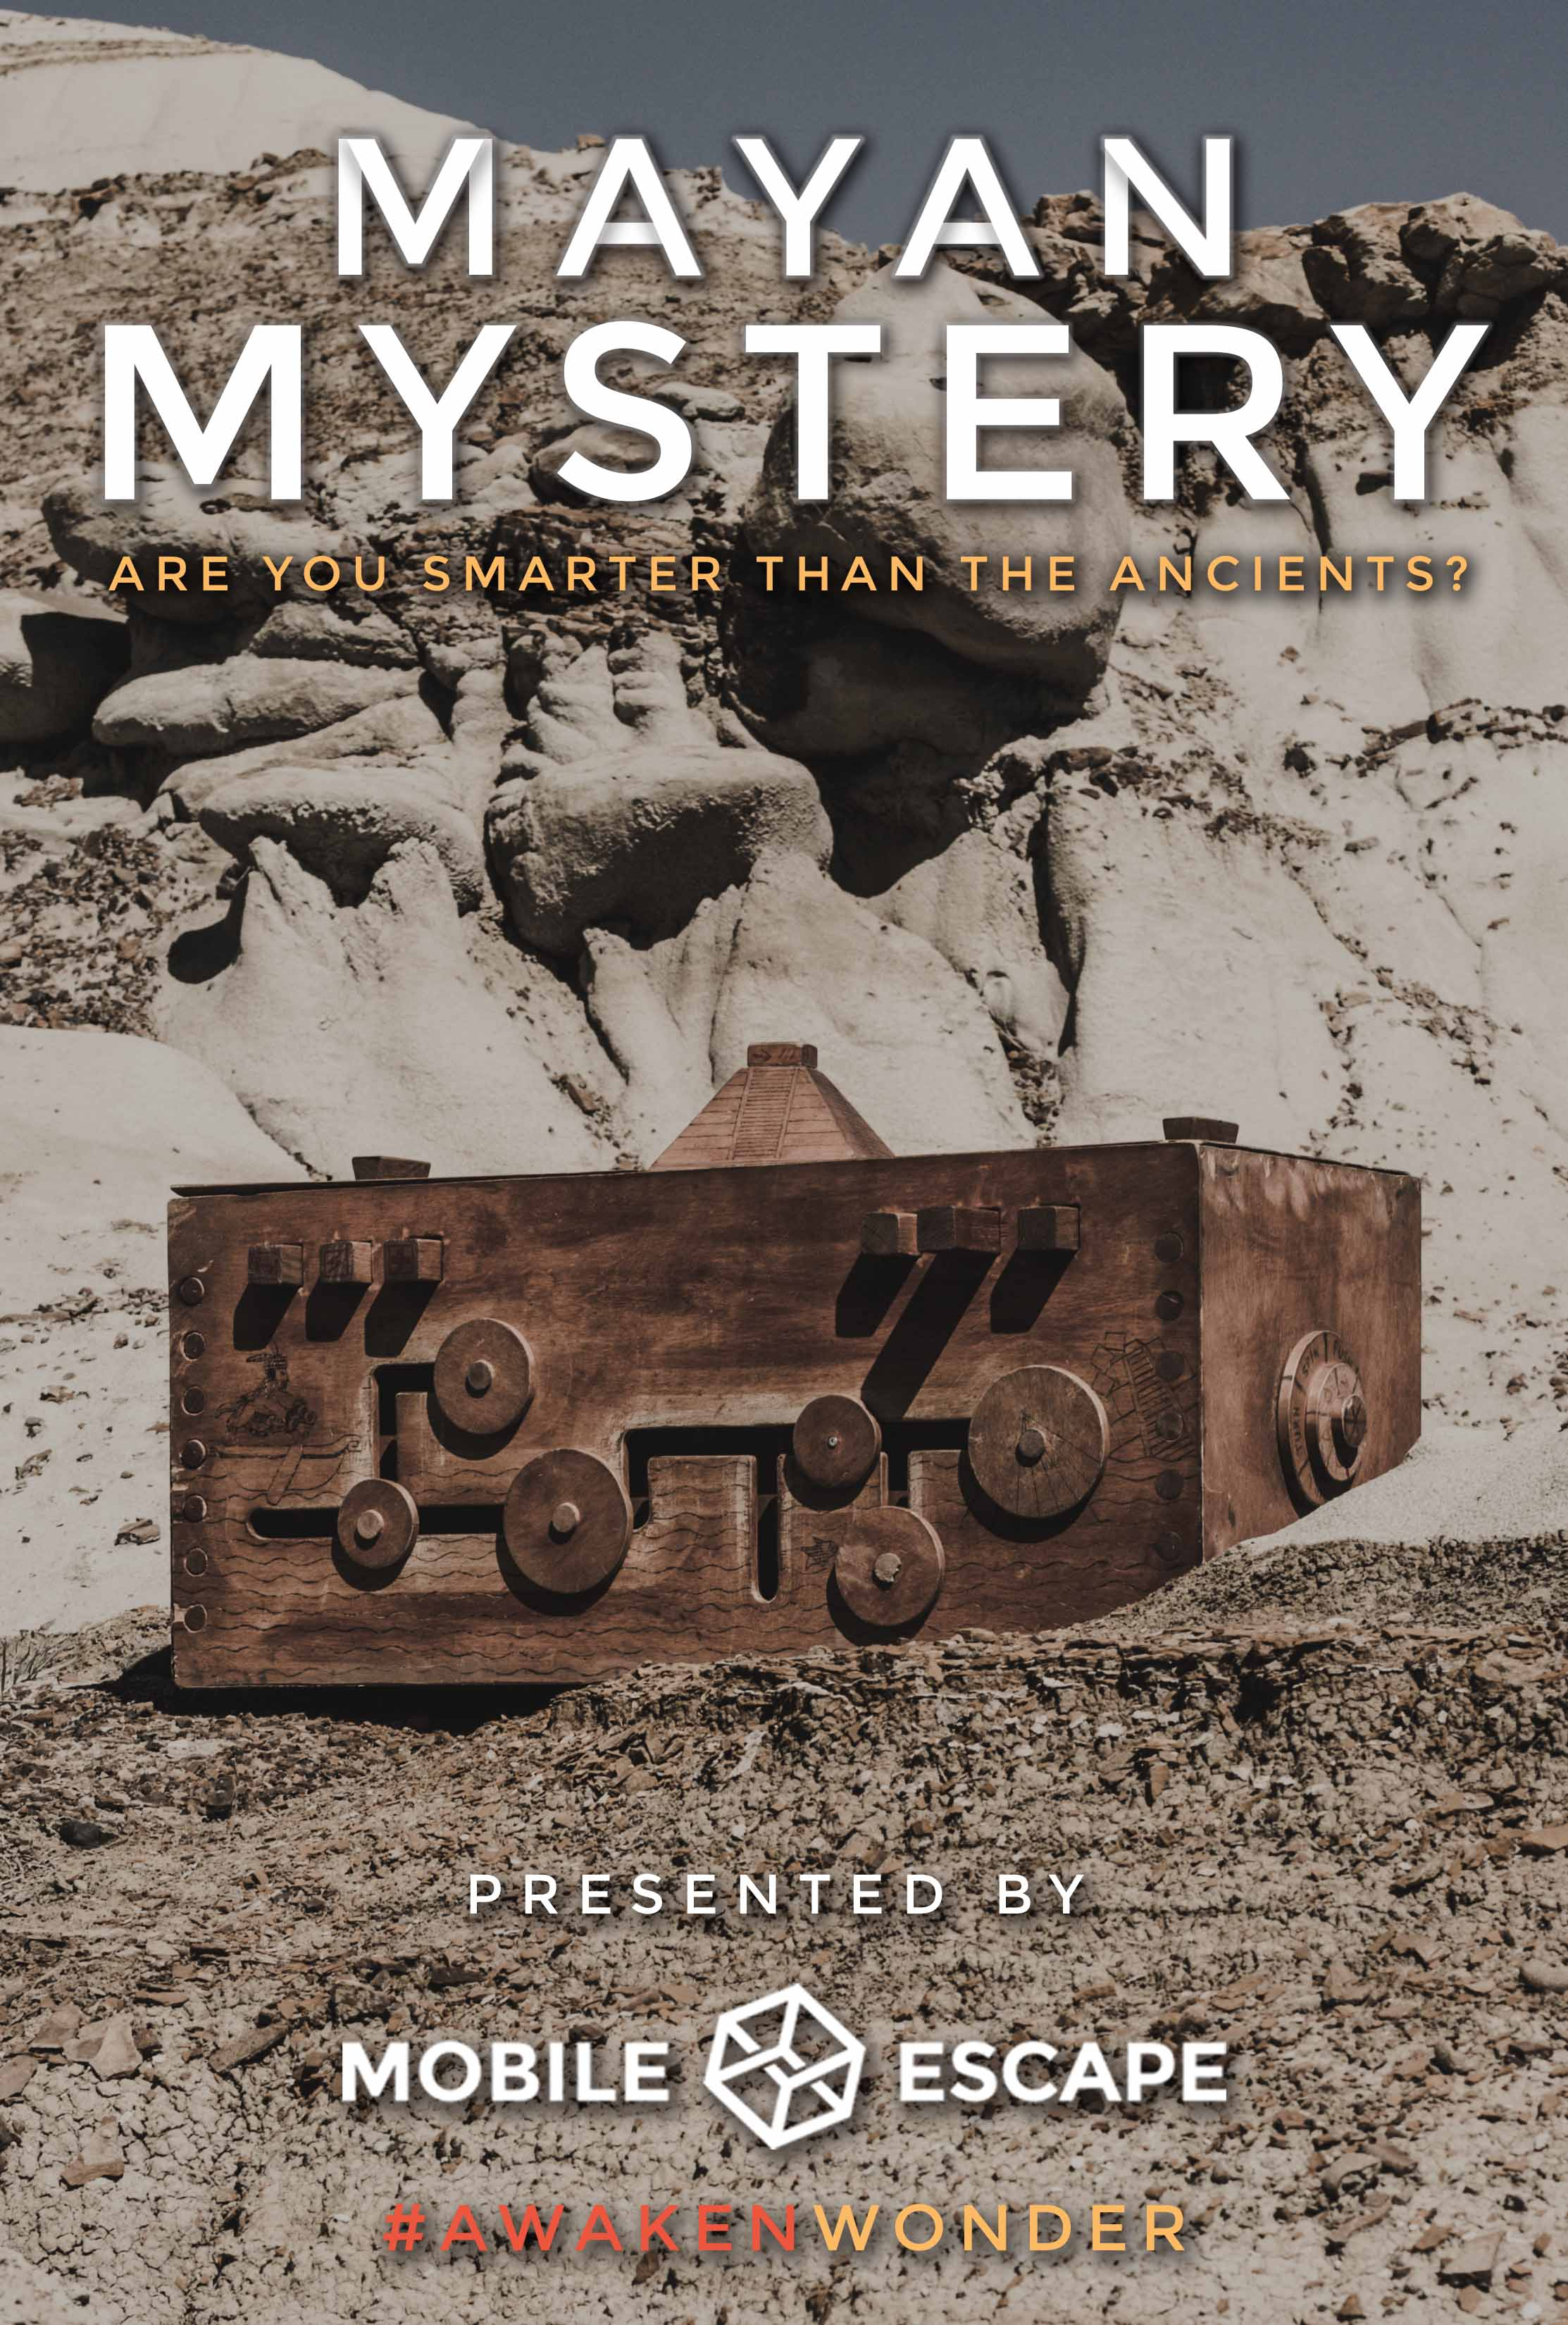 Mayan Mystery Room Poster_low res_2.jpg